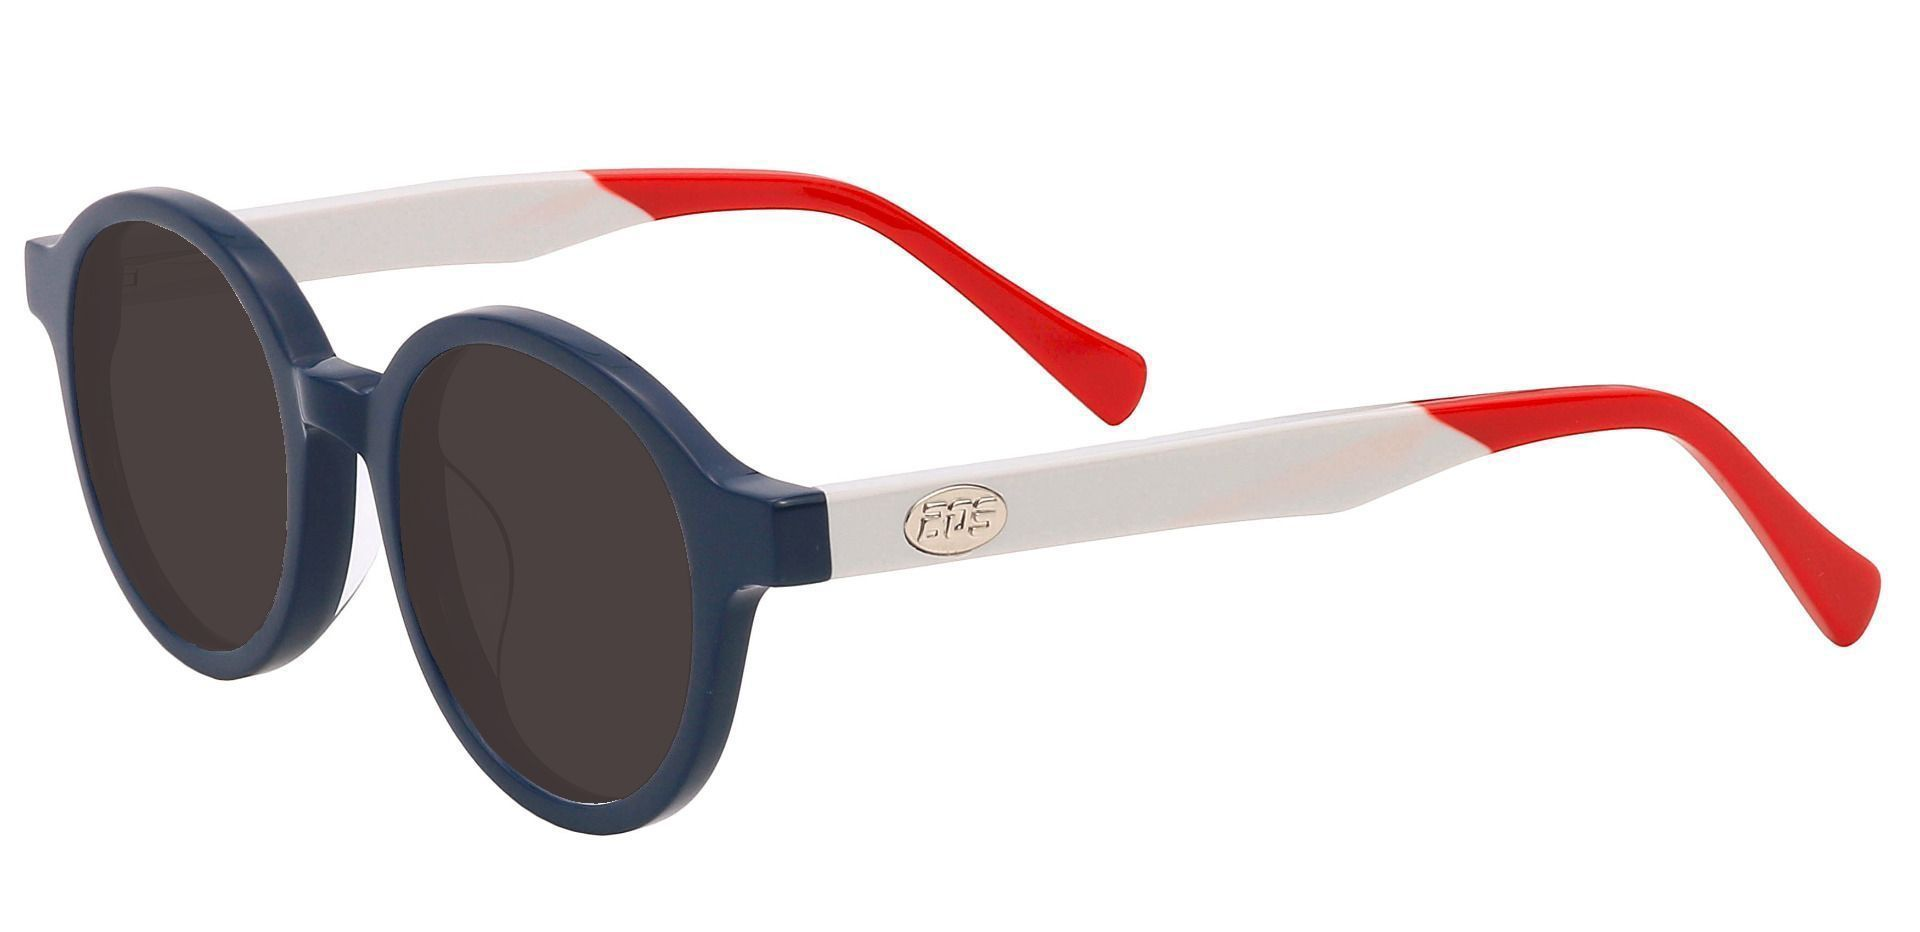 Dudley Round Single Vision Sunglasses - Blue Frame With Gray Lenses